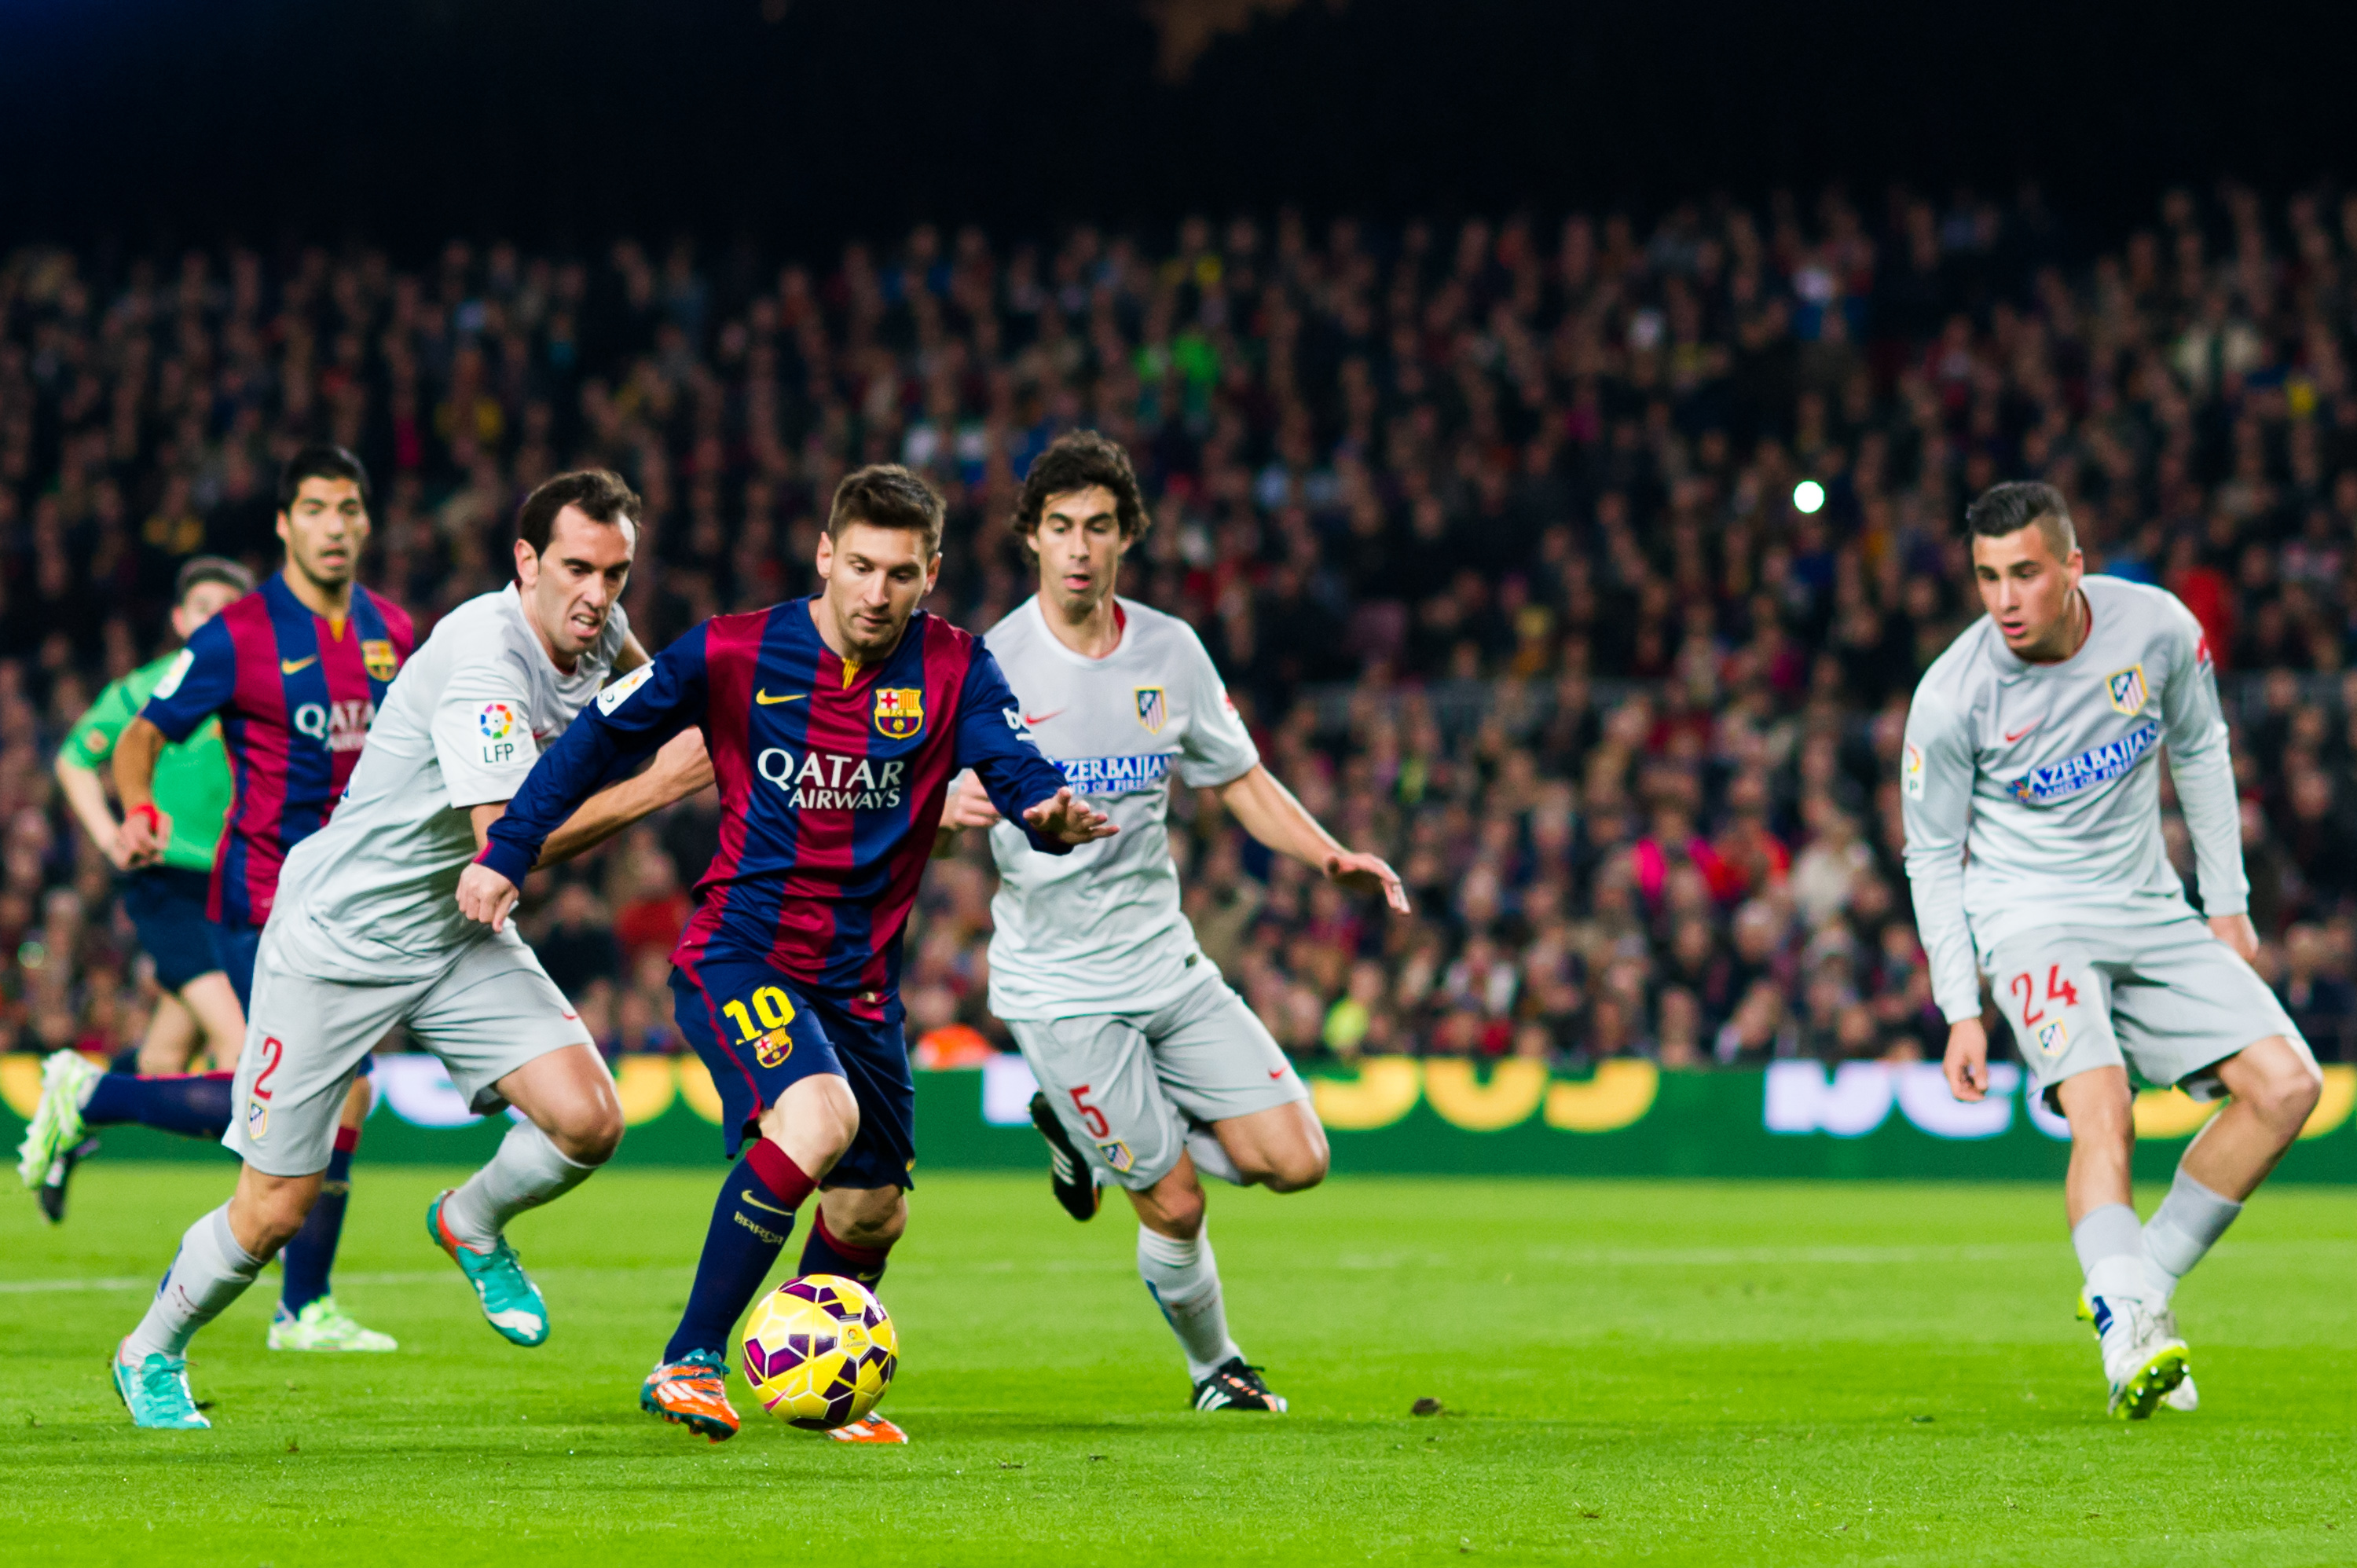 3 things we learned from Barcelona's 3-1 win over Atlético Madrid